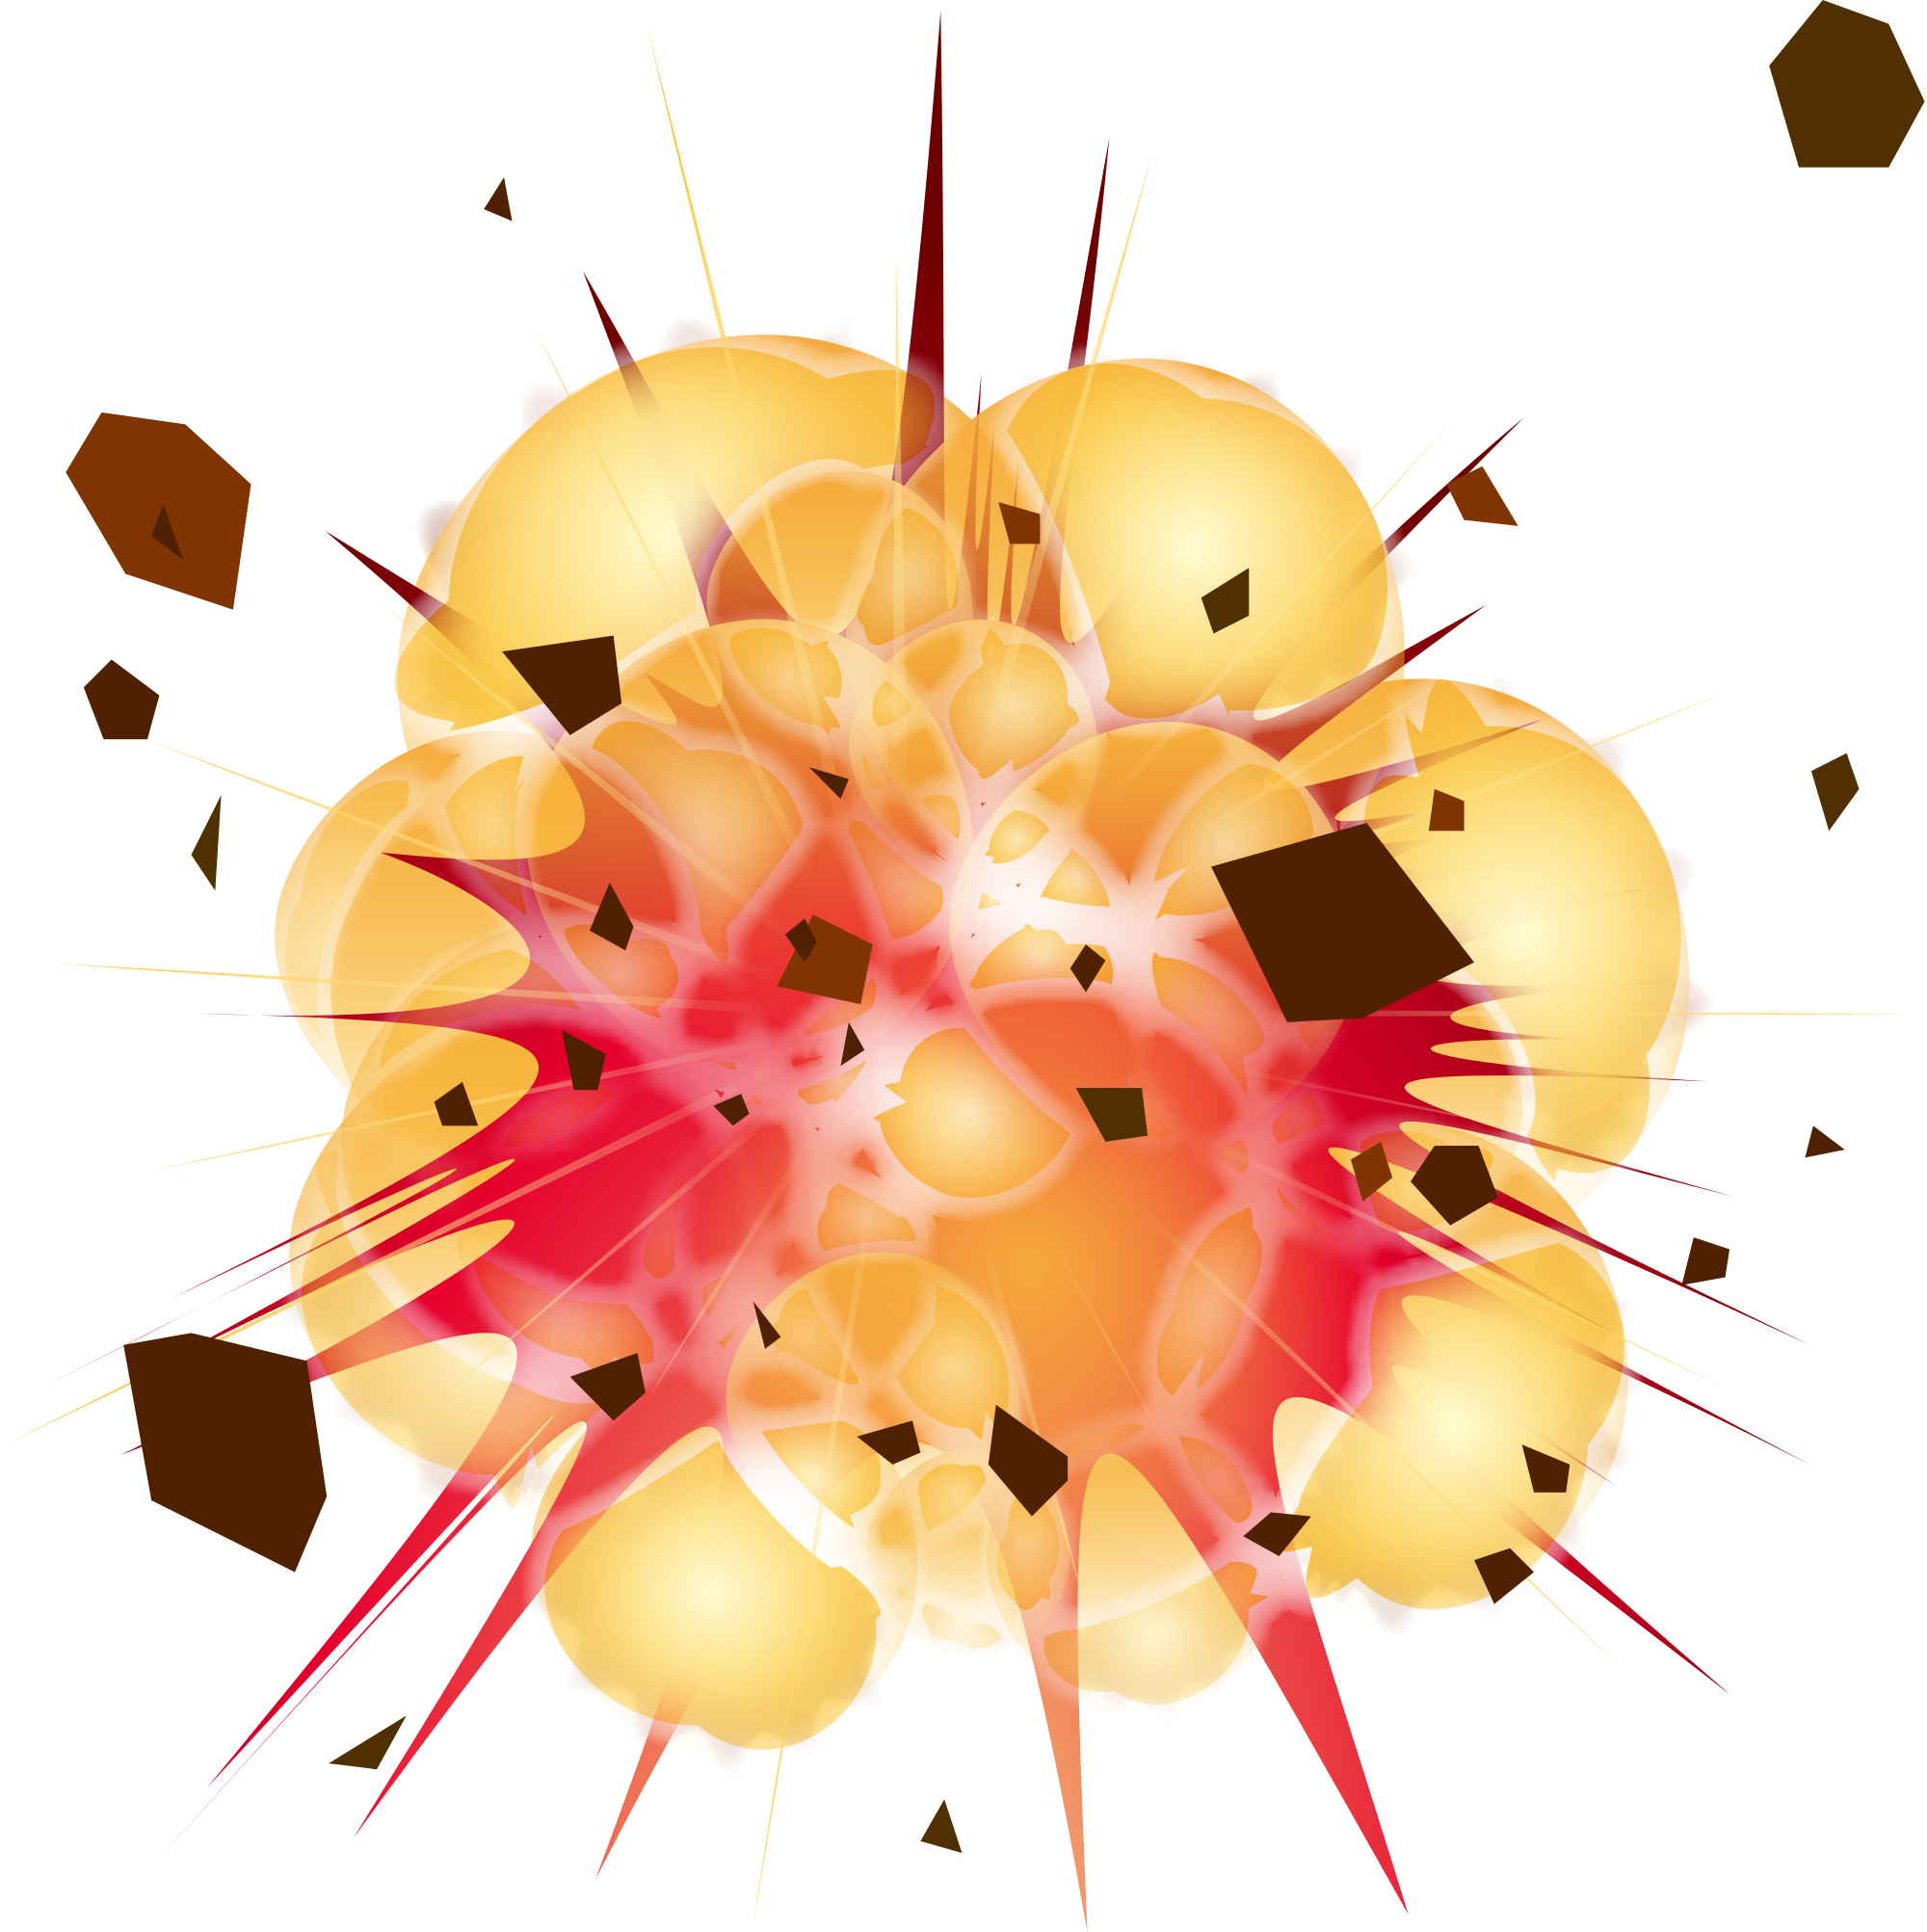 Clipart explosion svg. File icon wikimedia commons